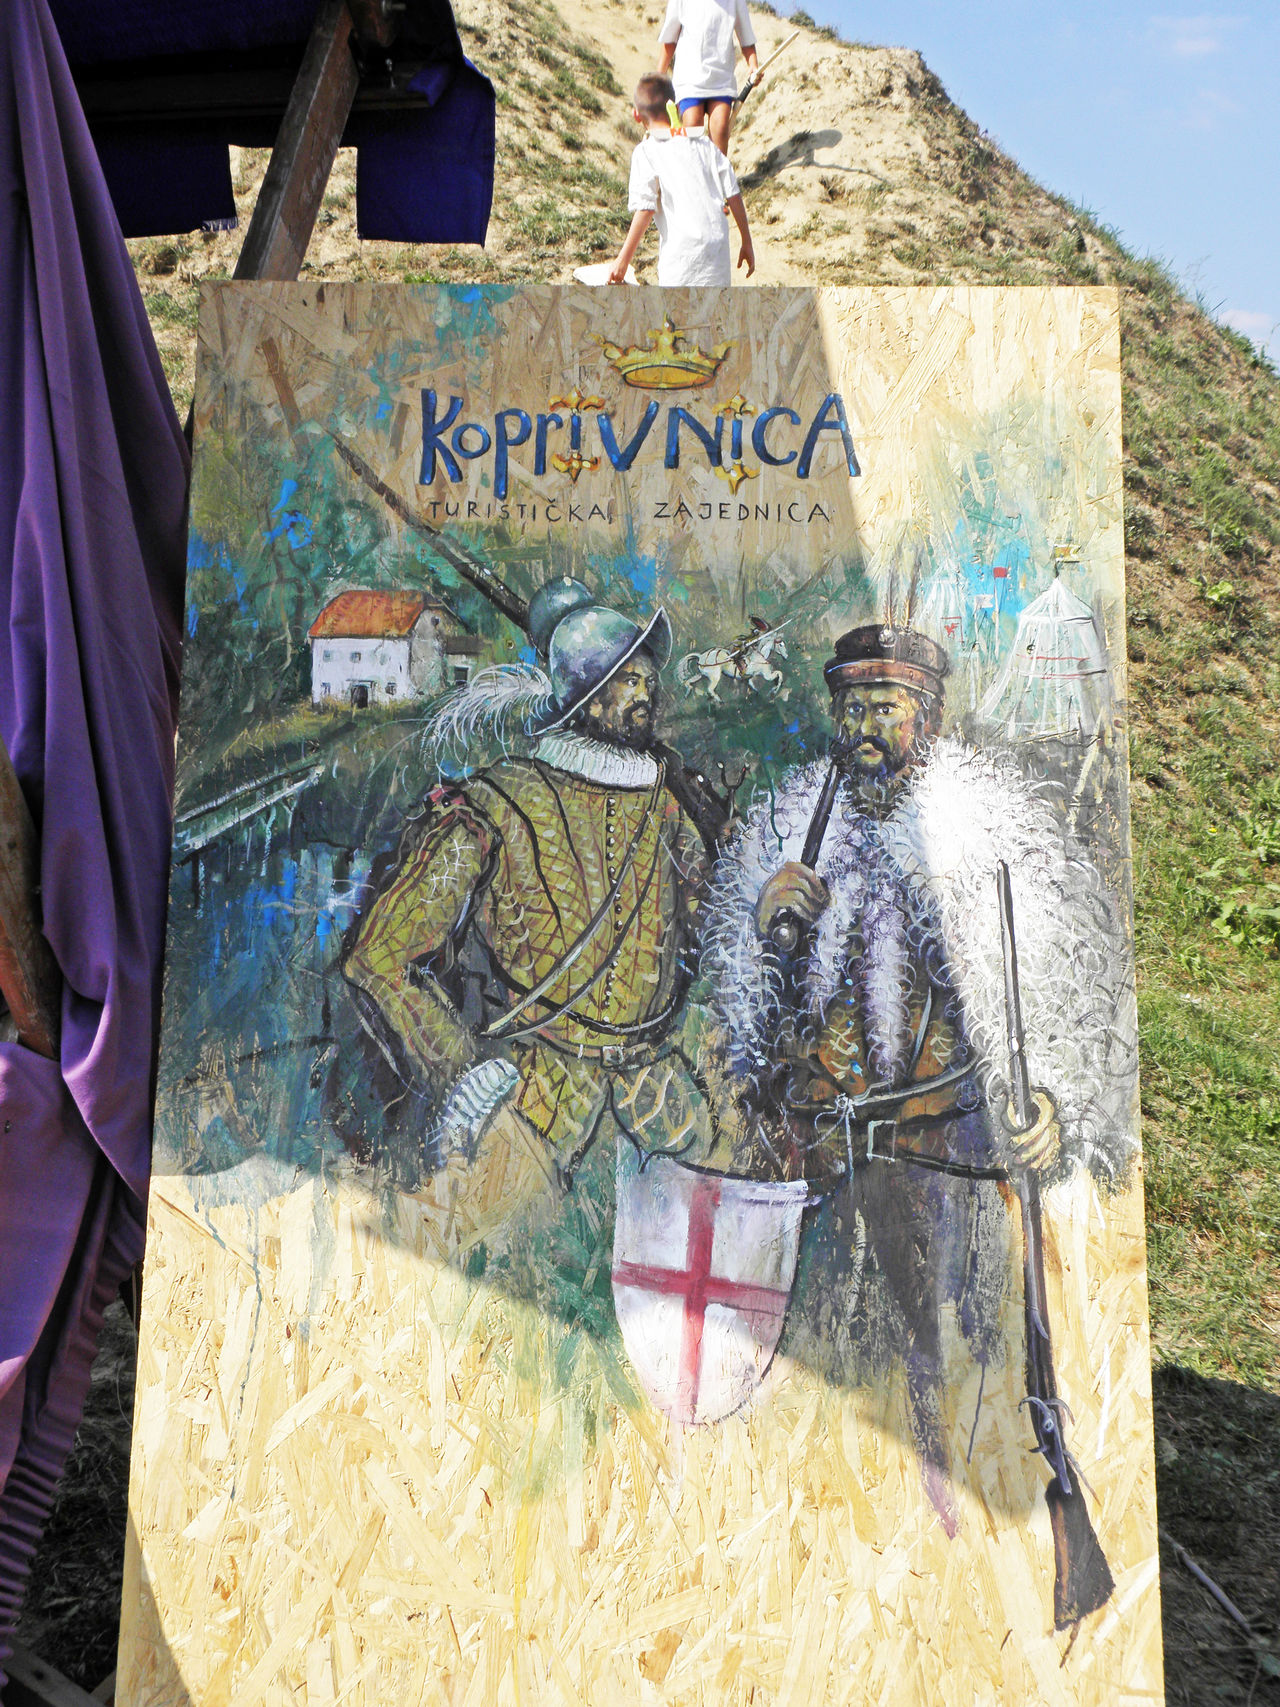 Renaissance Festival,Koprivnica,Croatia,Europe, 2016, 40,advertisement Poster Advertisement Art And Craft Creativity Croatia Day Enjoying Entertainment Eu Europe Fair History Invitation Koprivnica Outdoors Painting Picture Renaissance Festival Show Summer Text Western Script